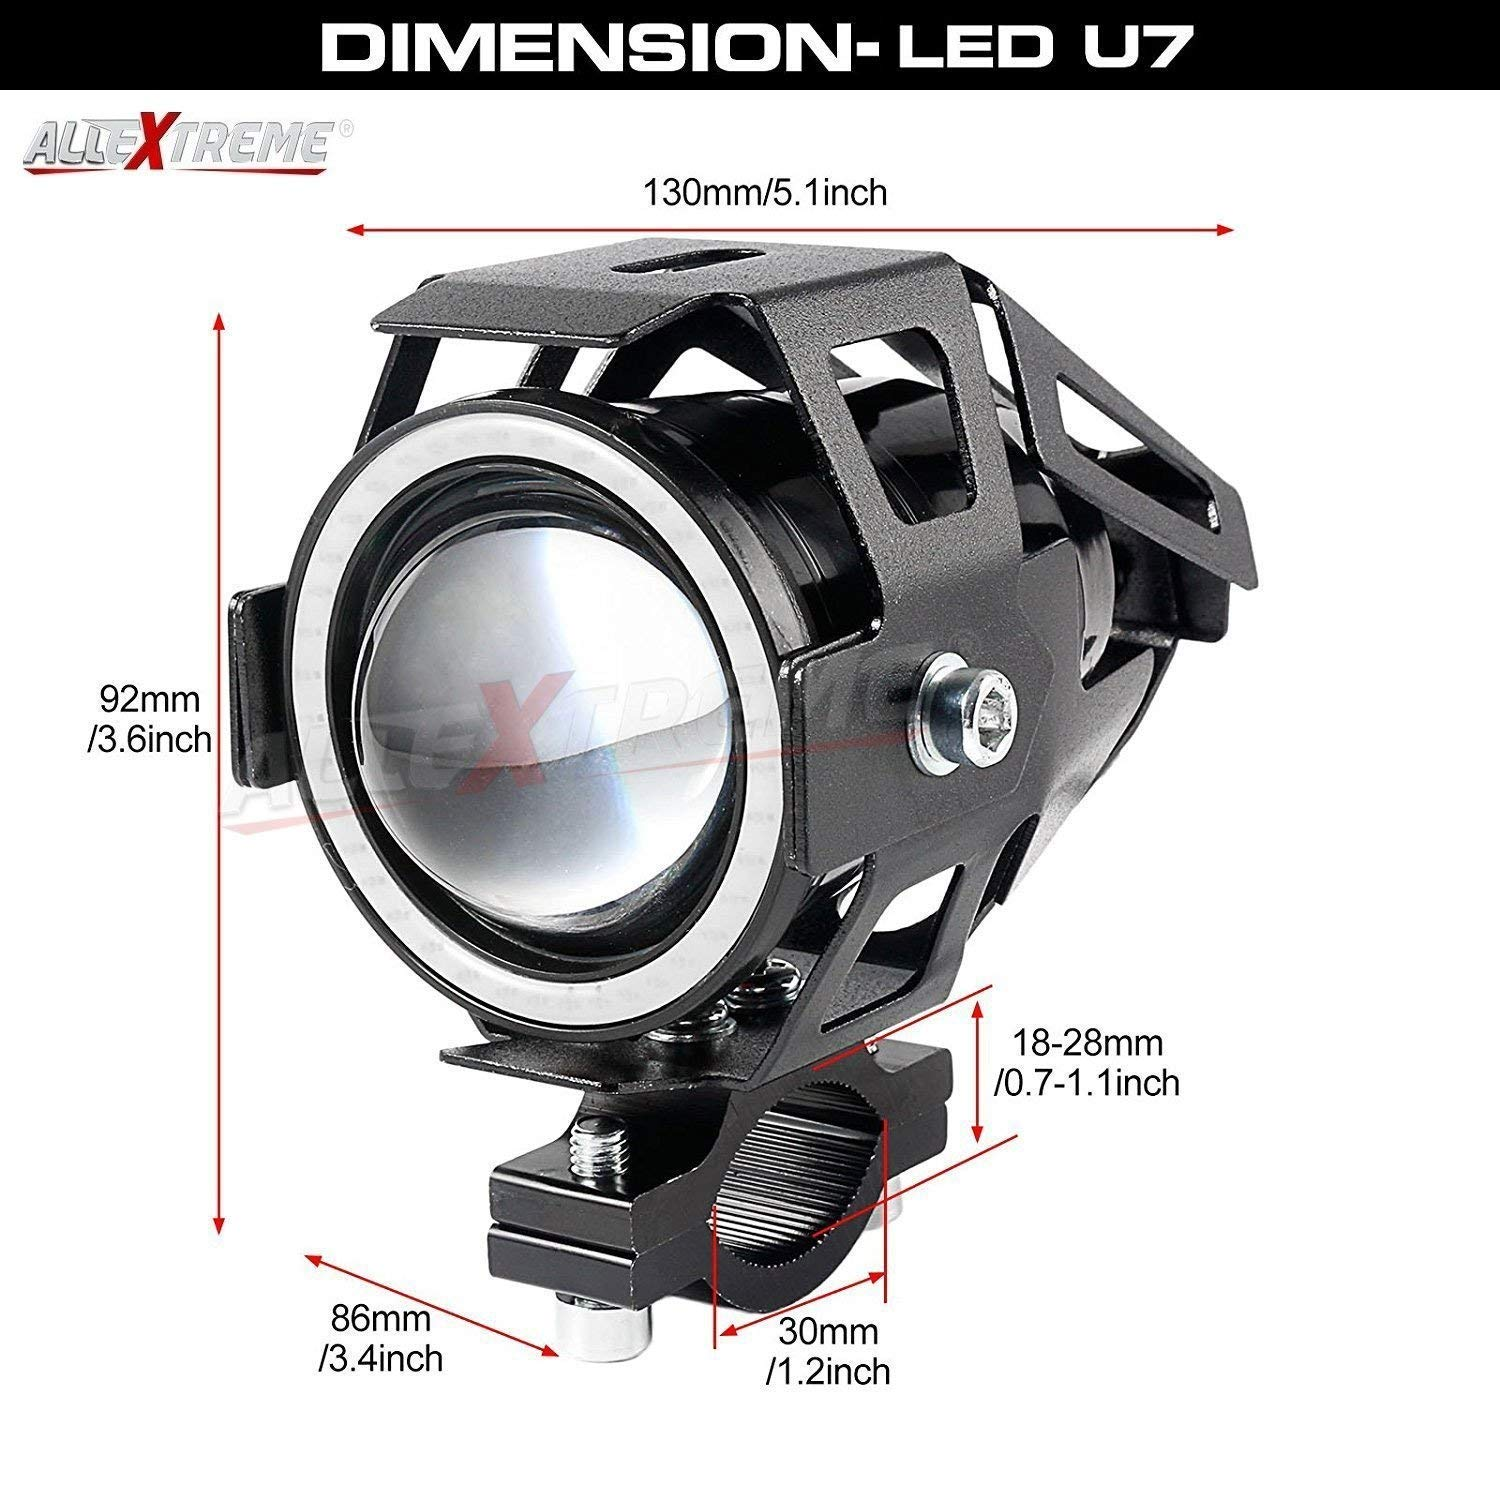 Allextreme Exu7br2 U7 Cree Led Fog Light Work Lamp With Hi Low Royal Enfield E Start Wiring Diagram Flashing Beam And Red Angel Eye Ring For Cars Motorcycles 12w 2 Pcs